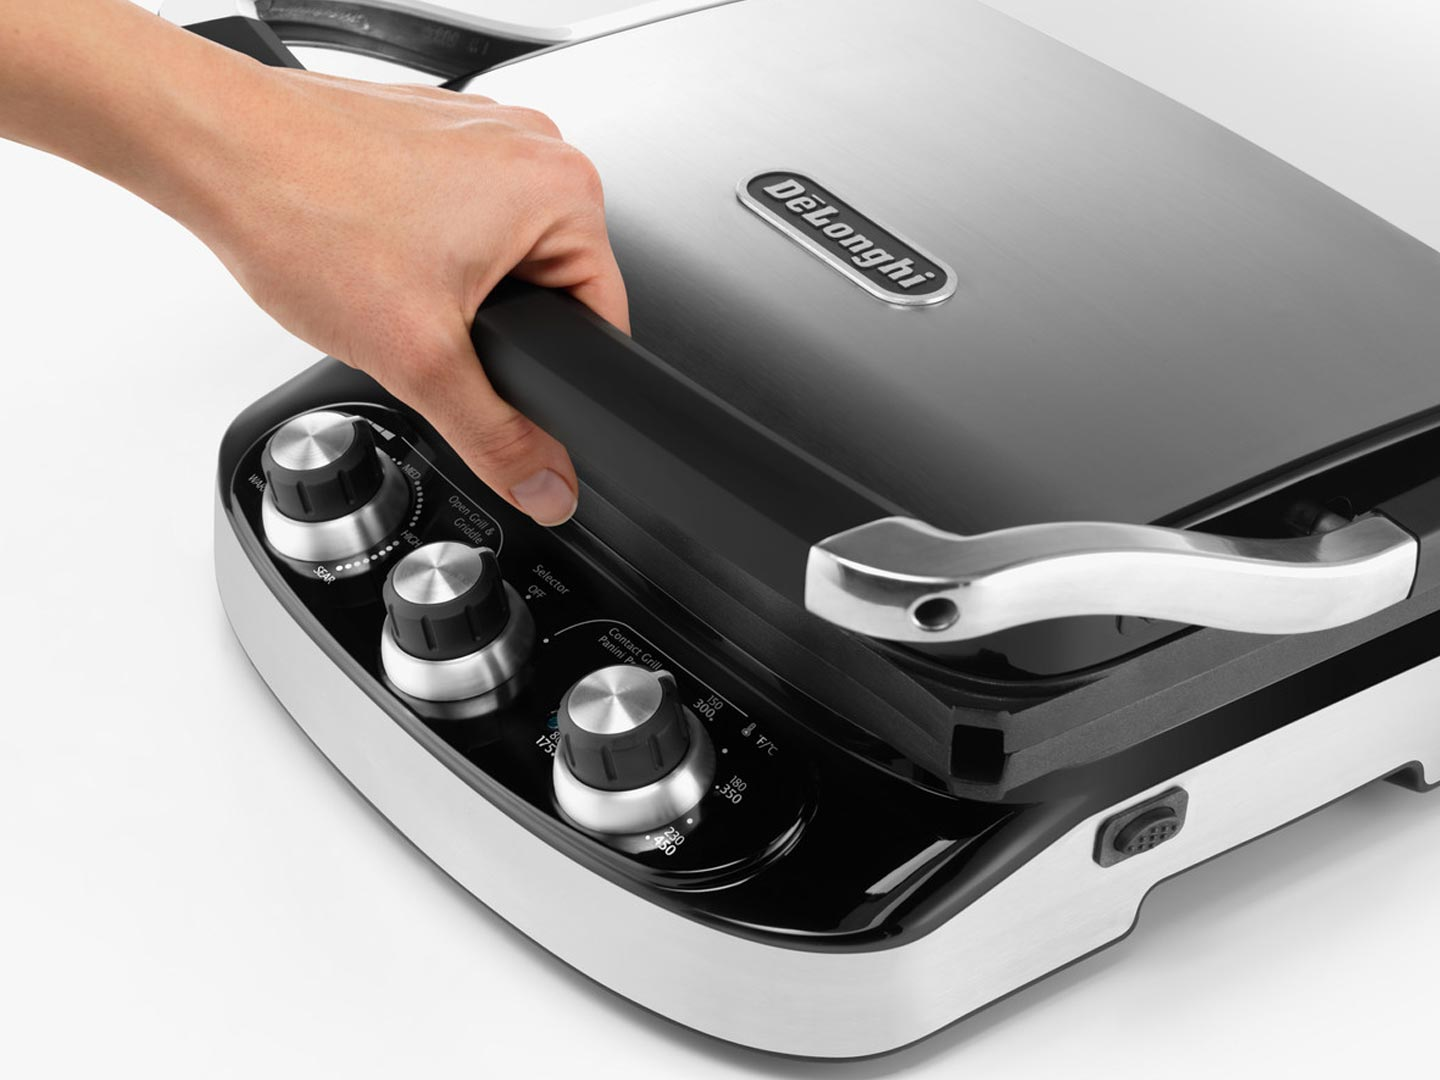 5-in-1 Indoor Grill, Griddle, Panini Press - - CGH902C